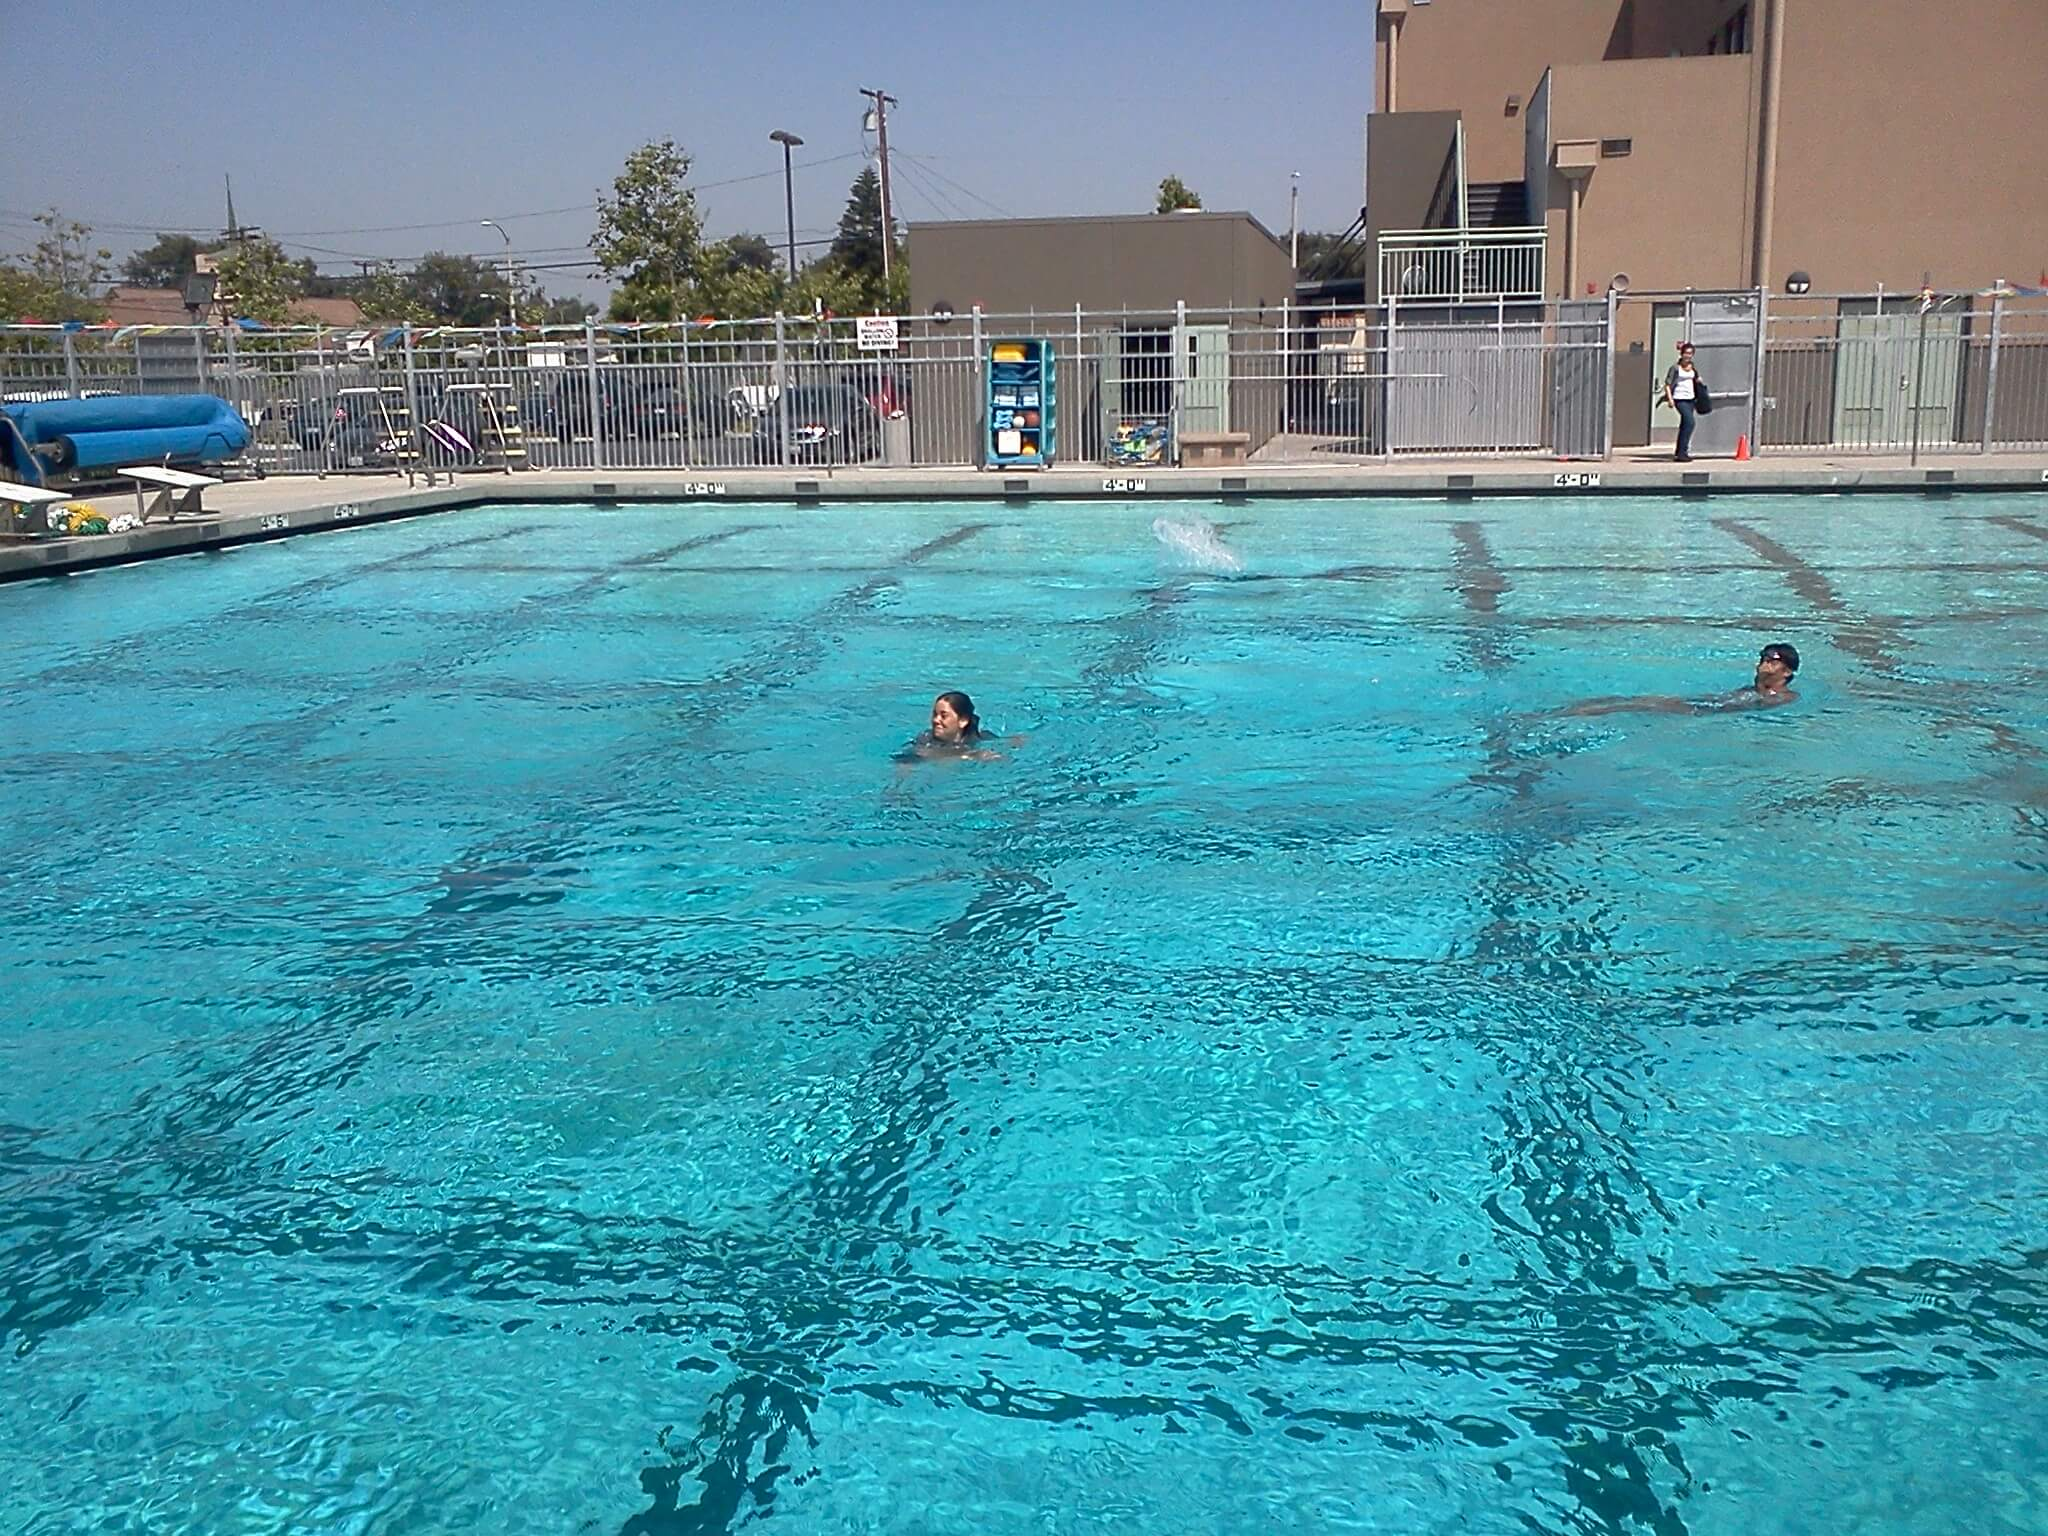 Sunsational Private Swim Lesson Instructor in Los Angeles - Susana G